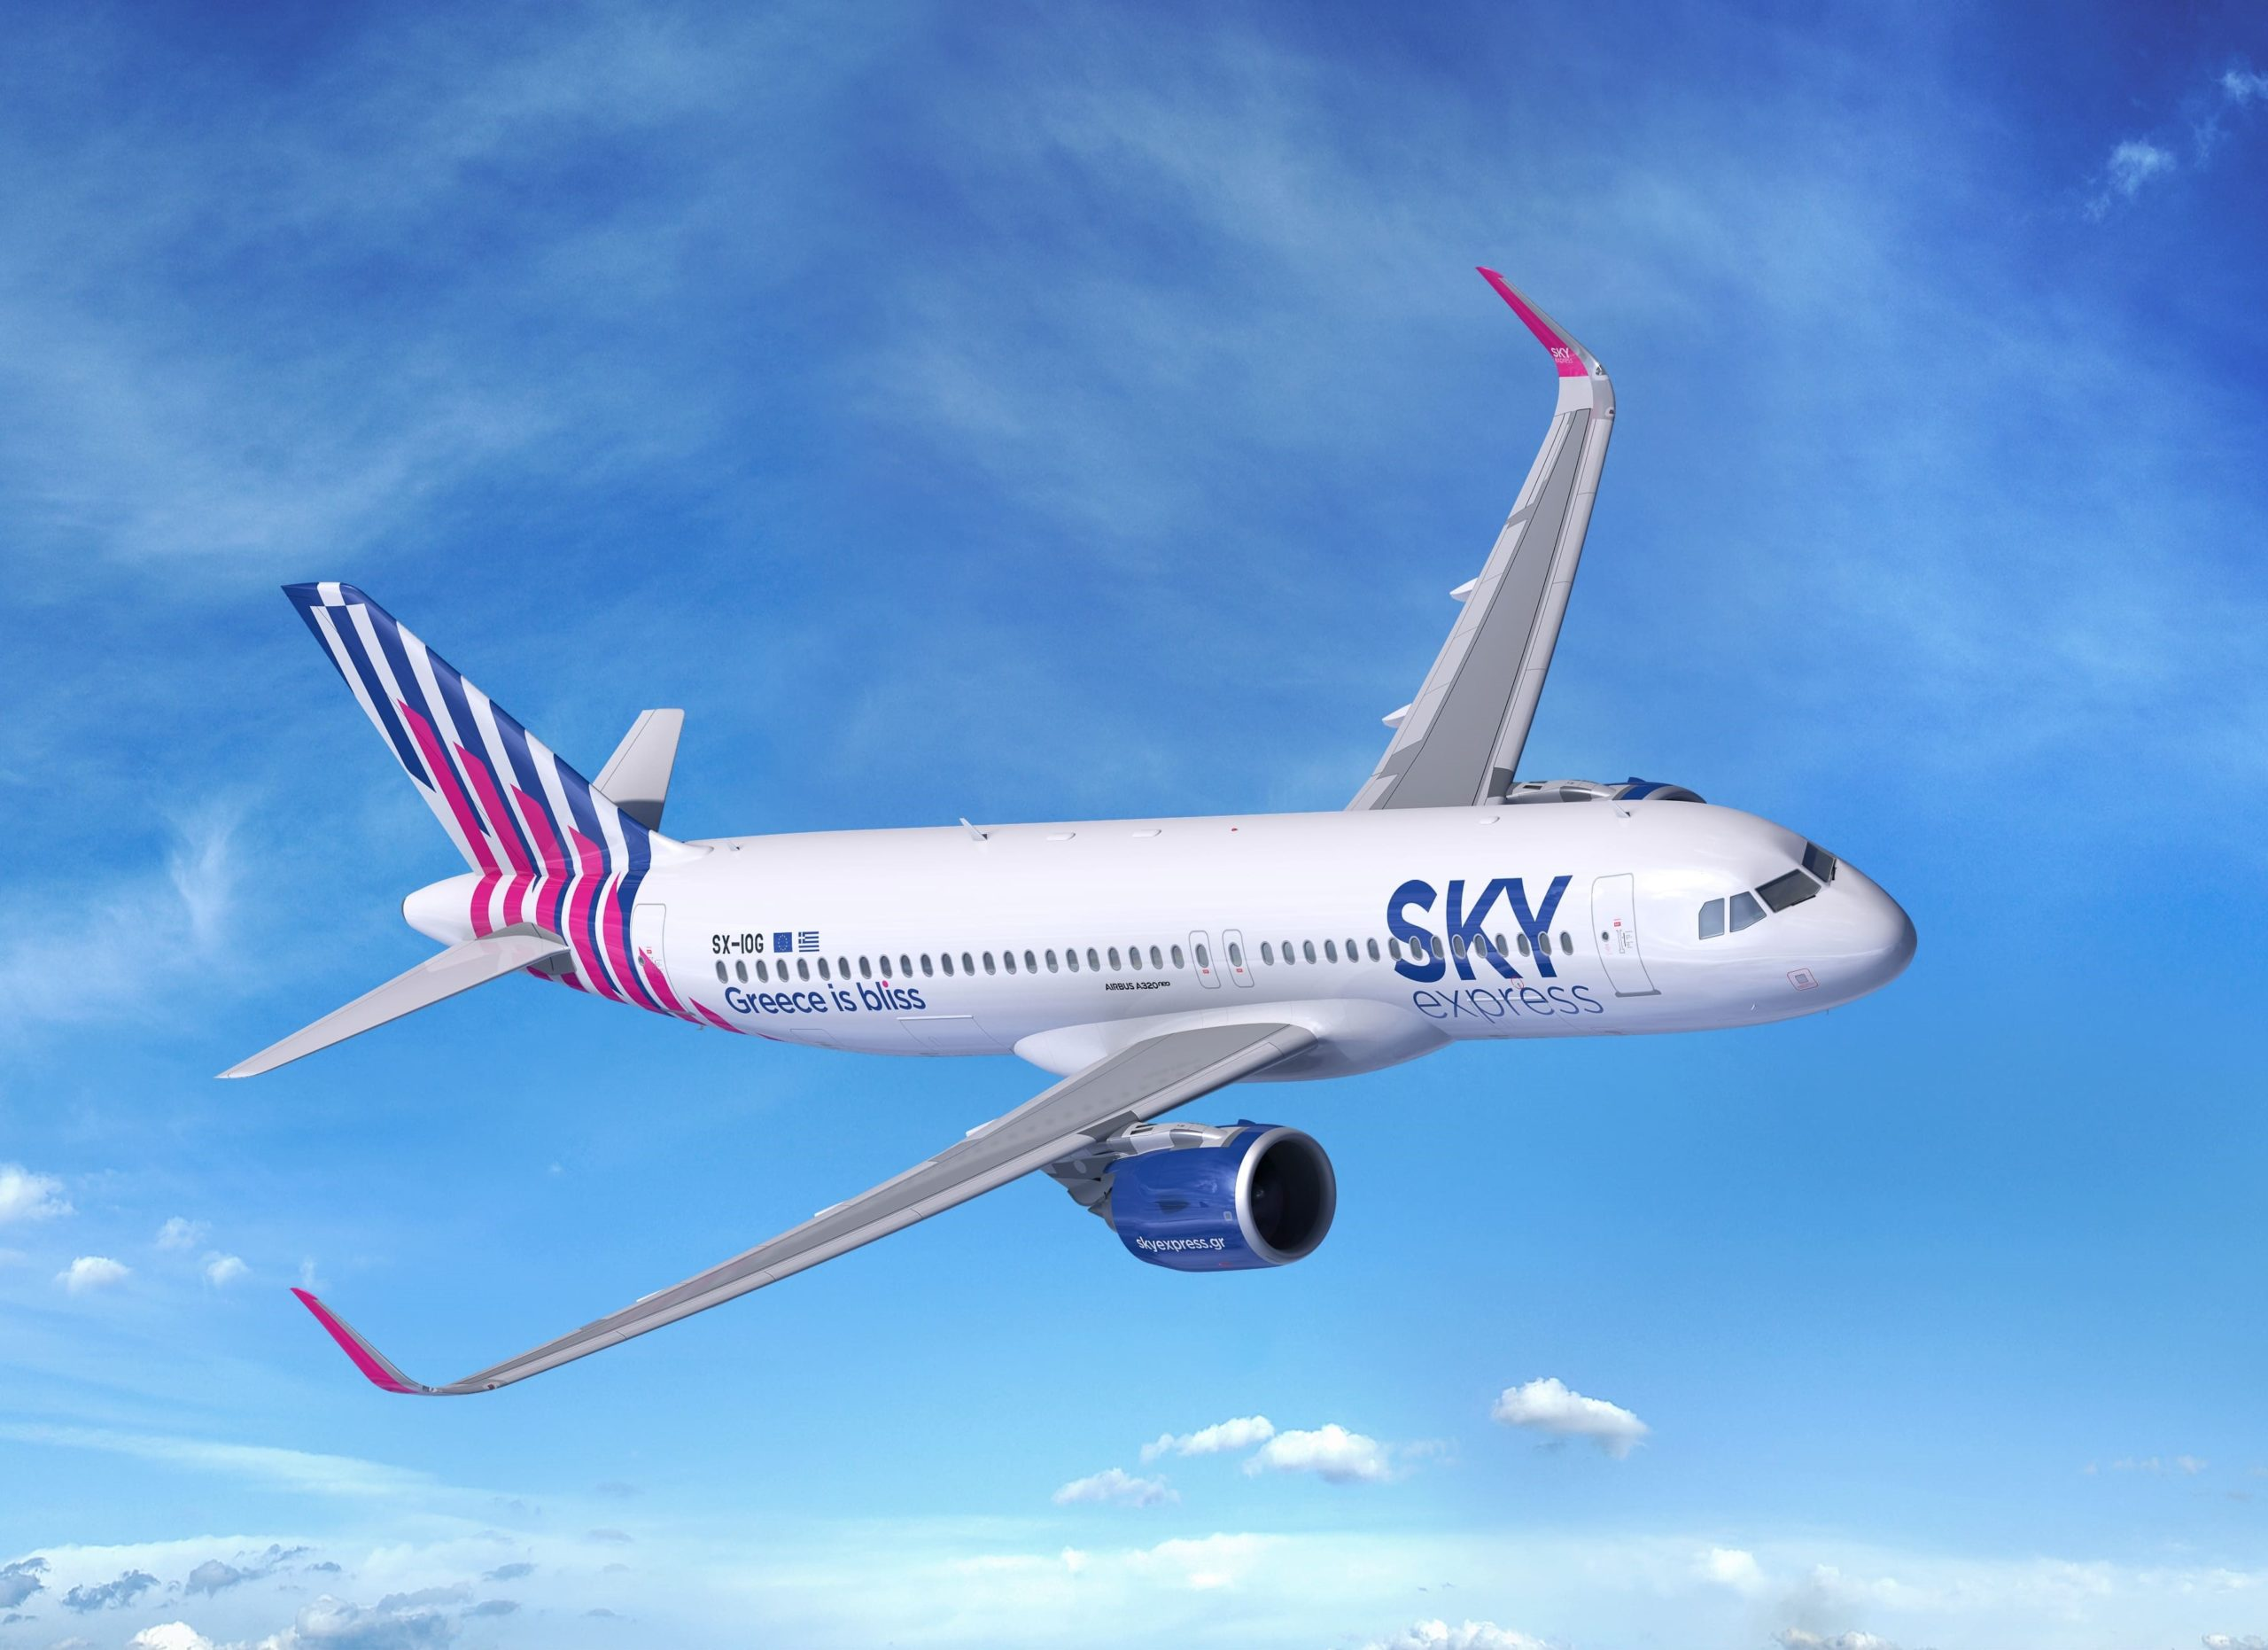 Airbus gains new customer as SKY express orders four A320neo jets